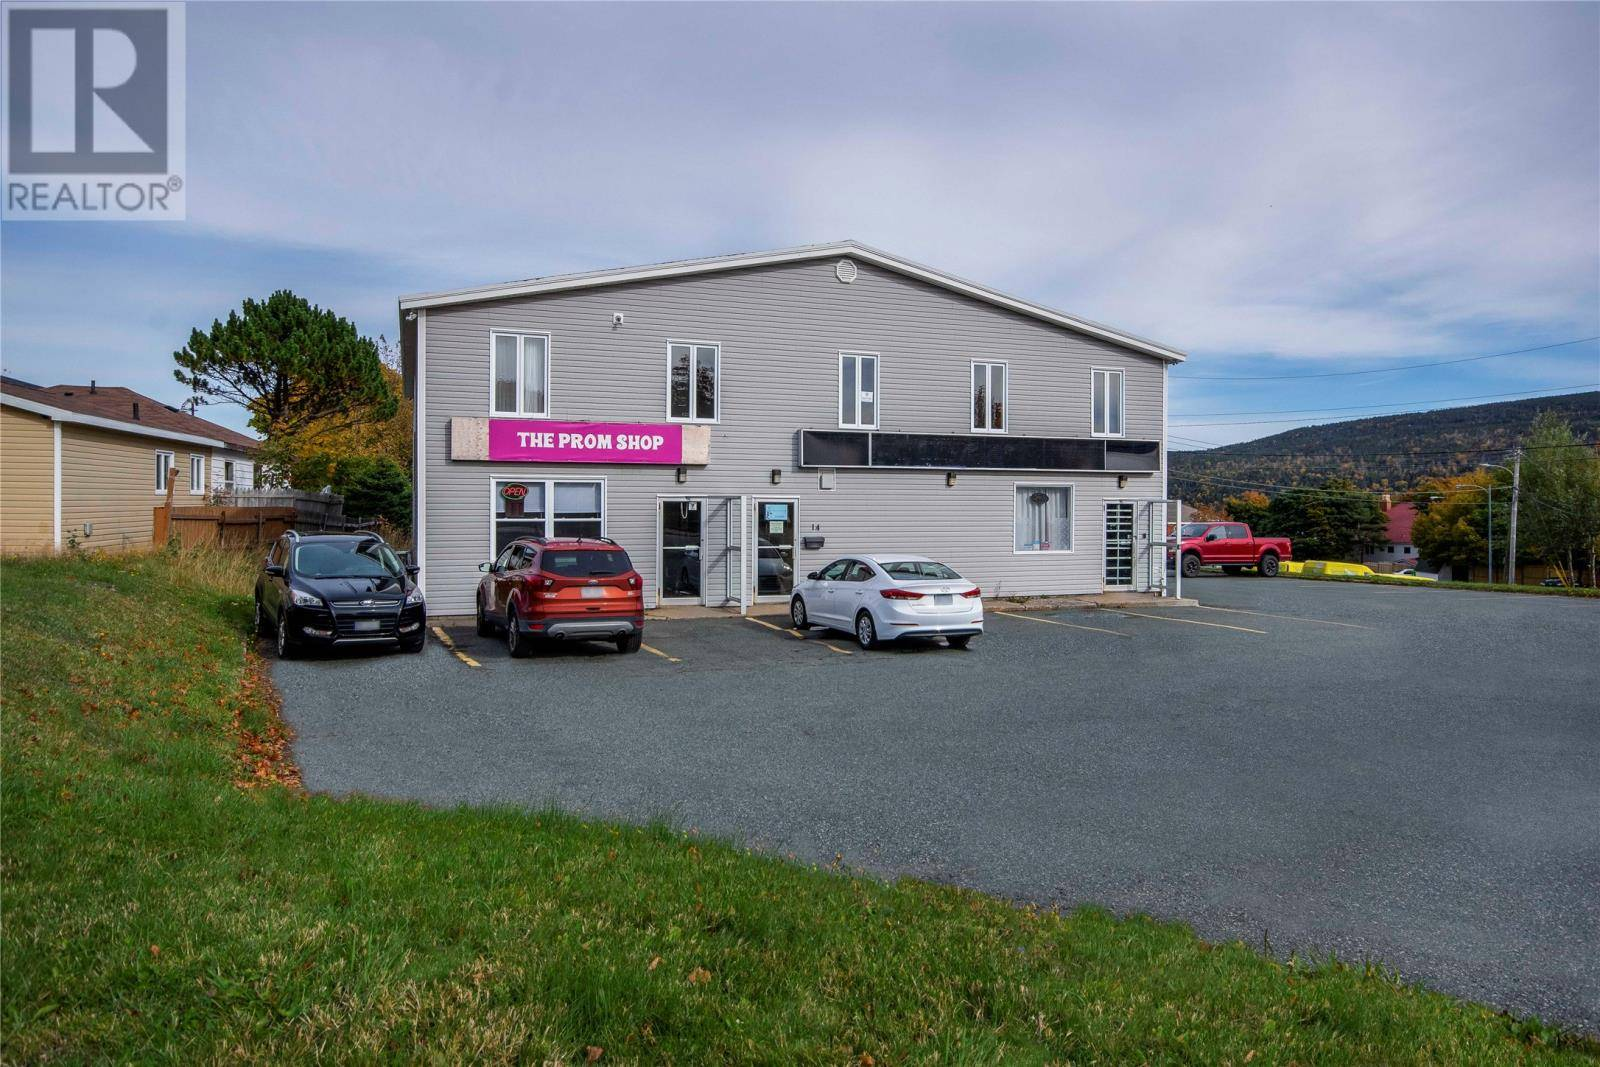 Residential property for sale at 14 Forbes St St. John's Newfoundland - MLS: 1205312